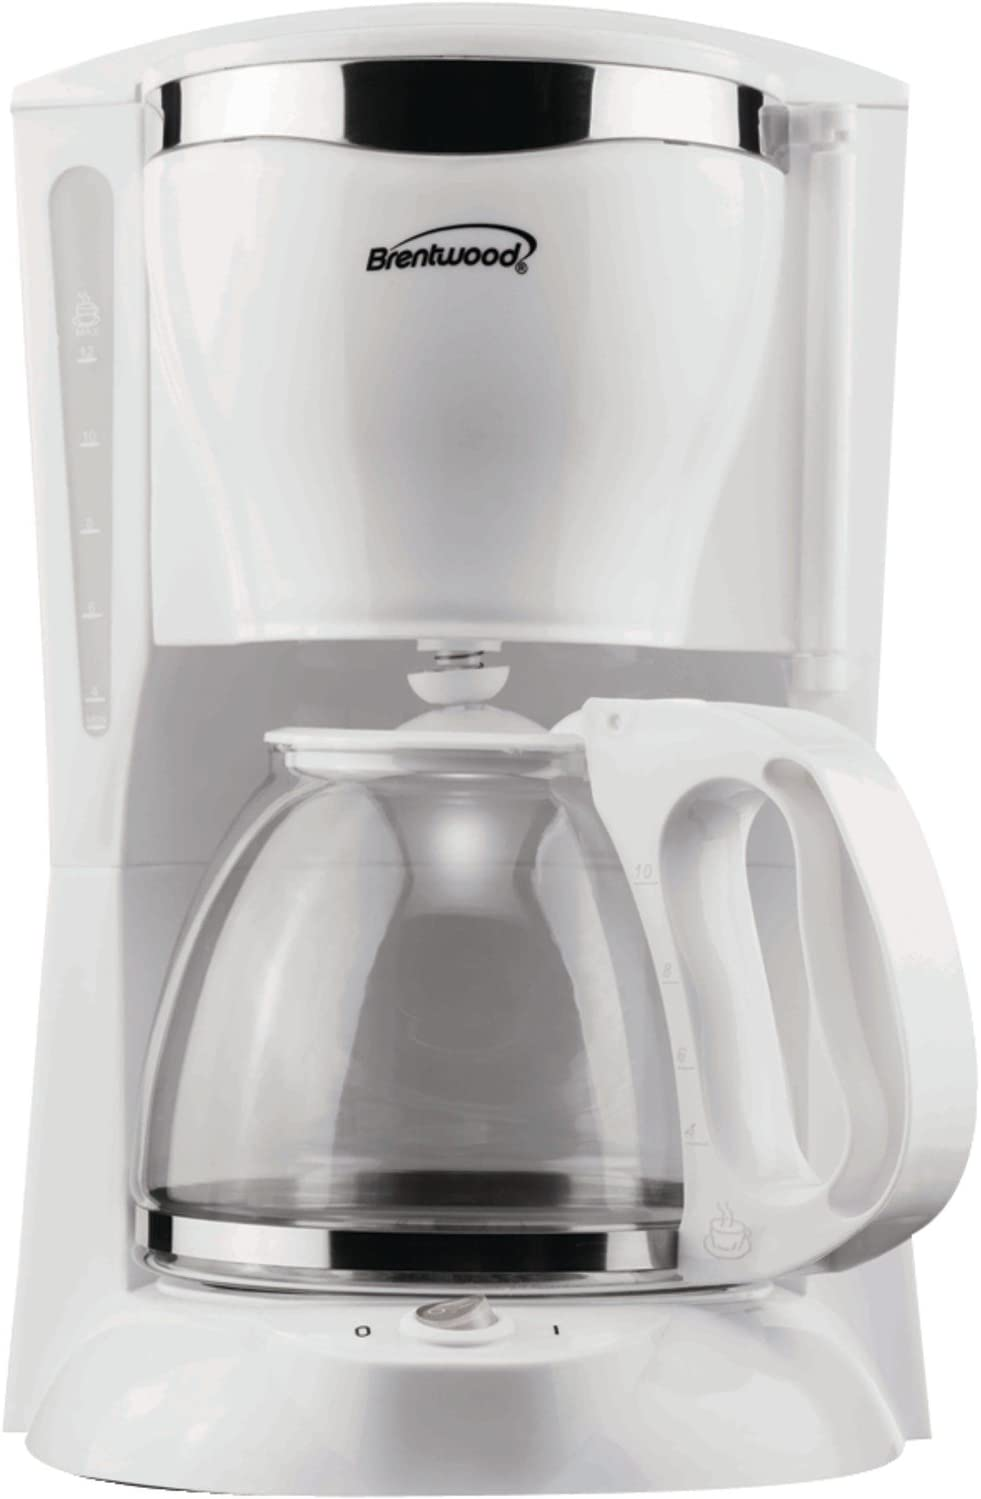 Brentwood Coffee Maker, 12-Cup, White